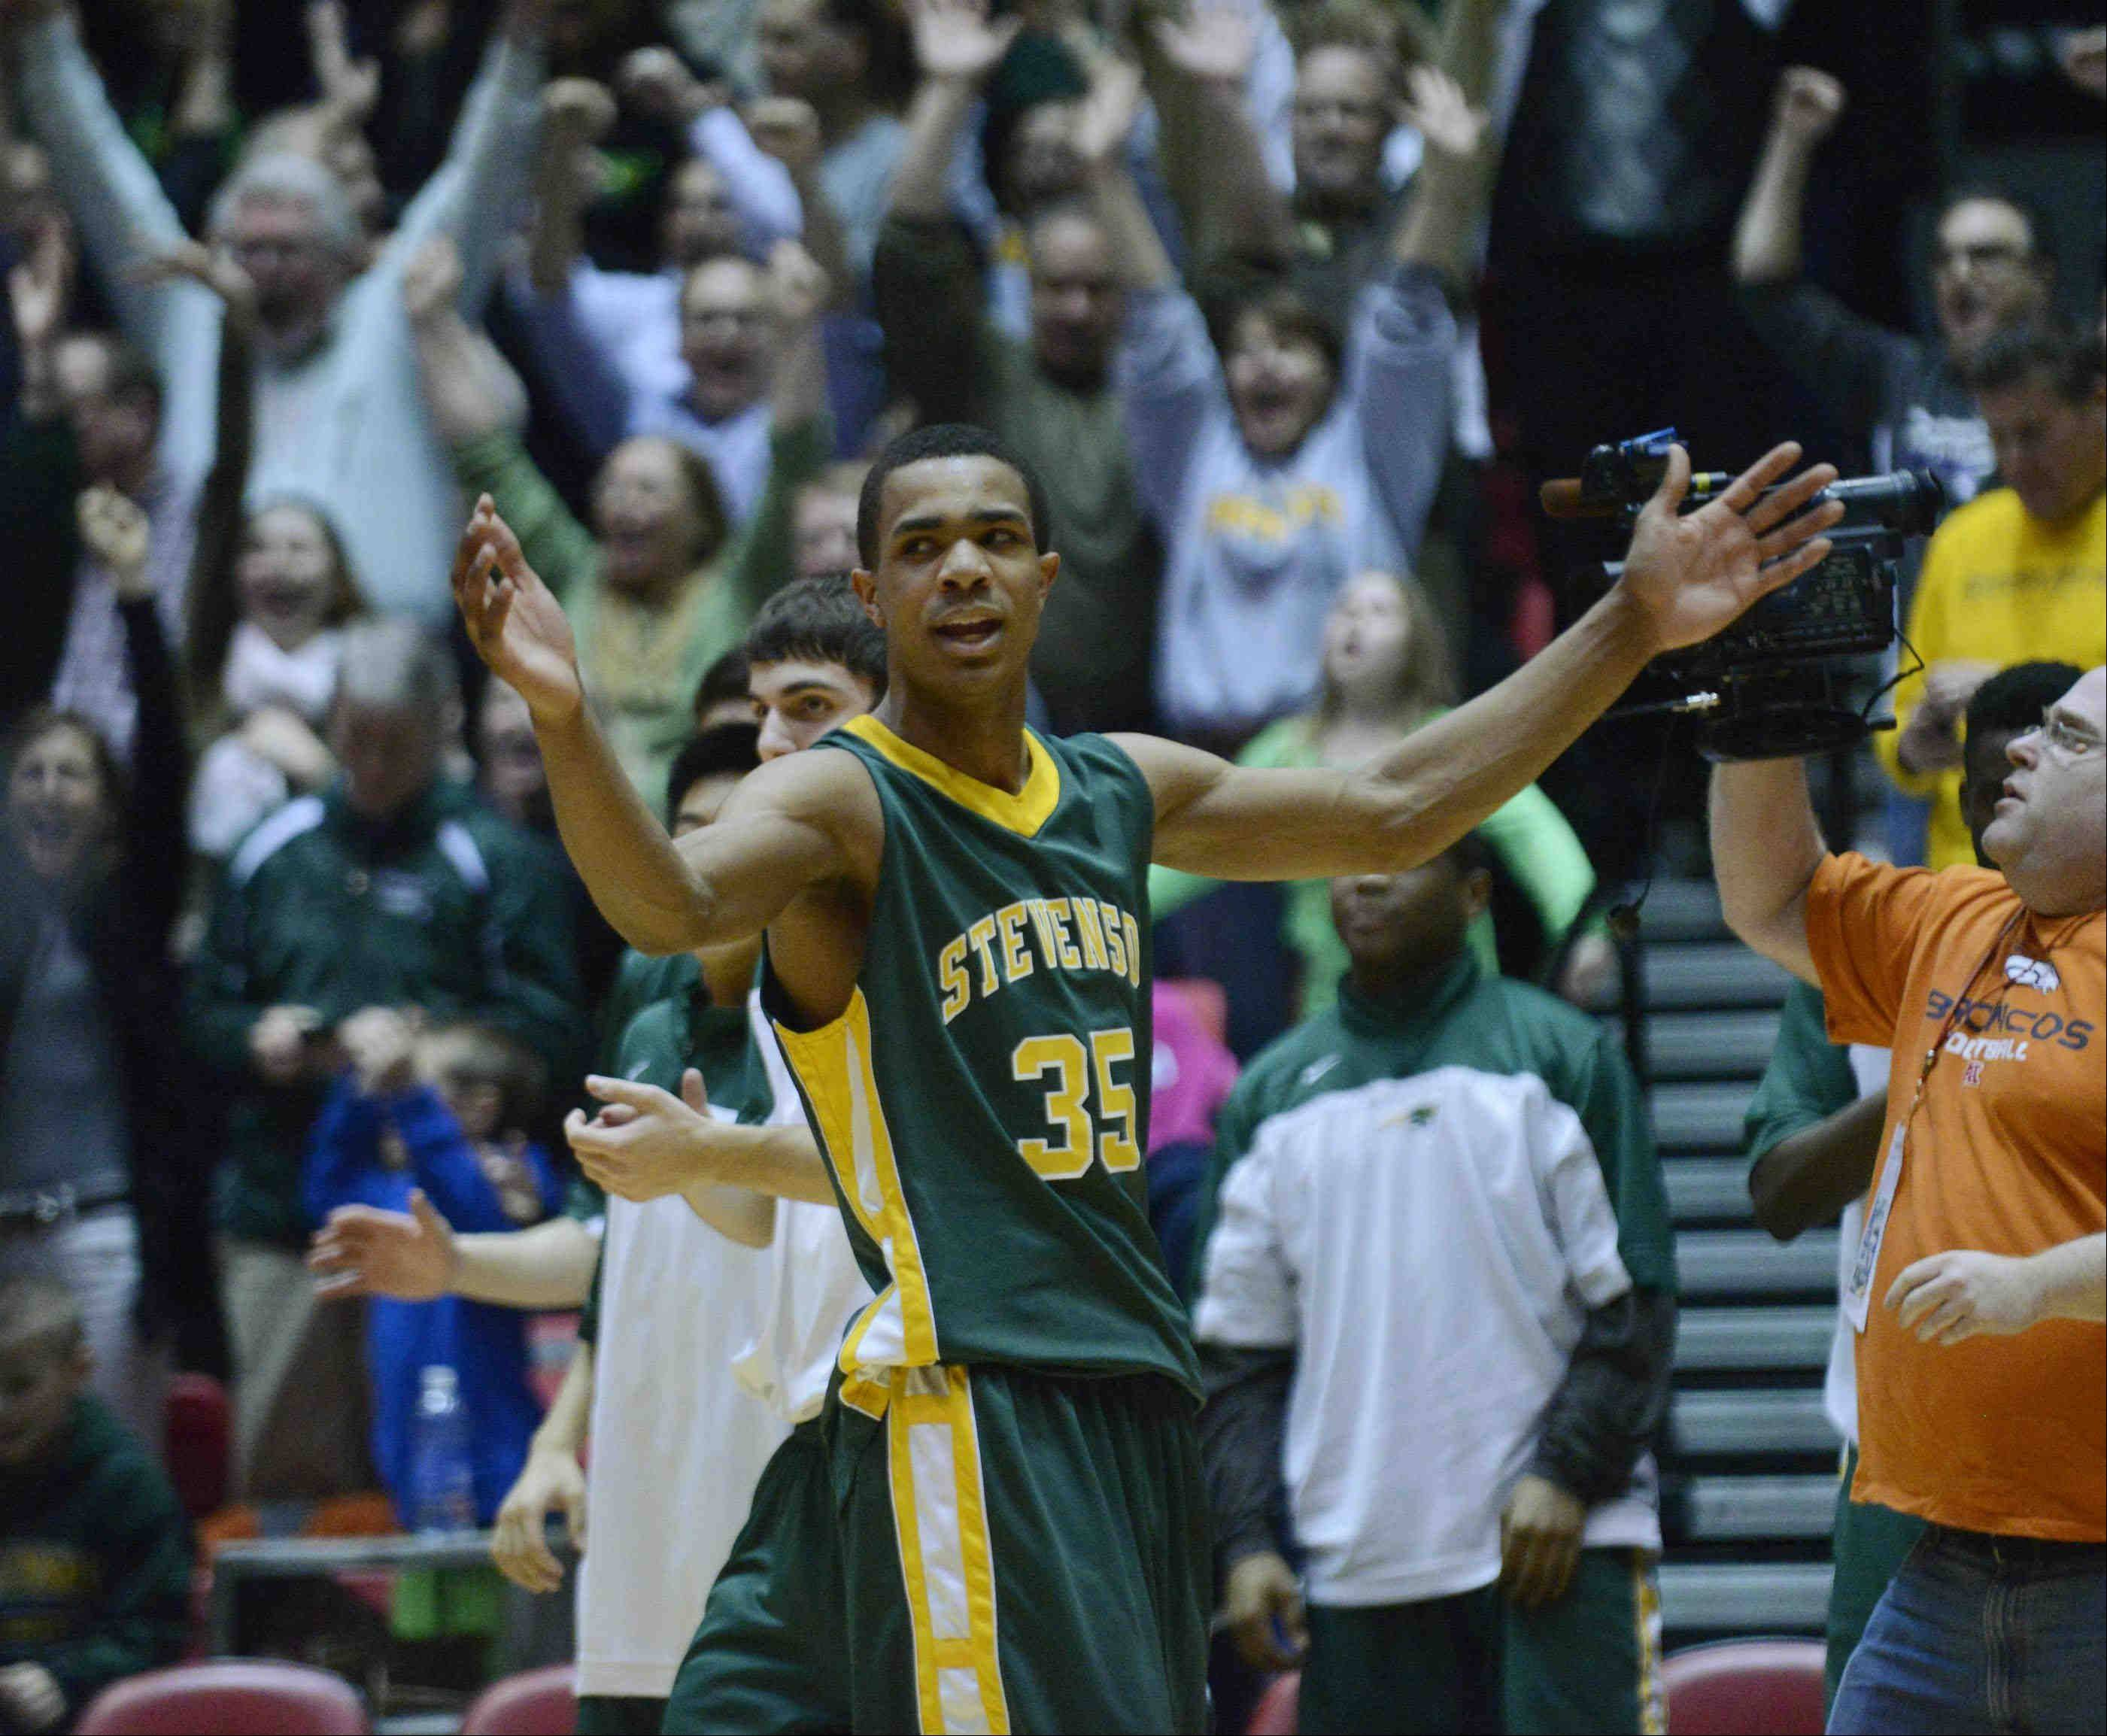 Stevenson's Connor Cashaw reacts at the buzzer as the Patriots defeat Rockford Boylan Tuesday in the Class 4A NIU supersectional game in DeKalb.